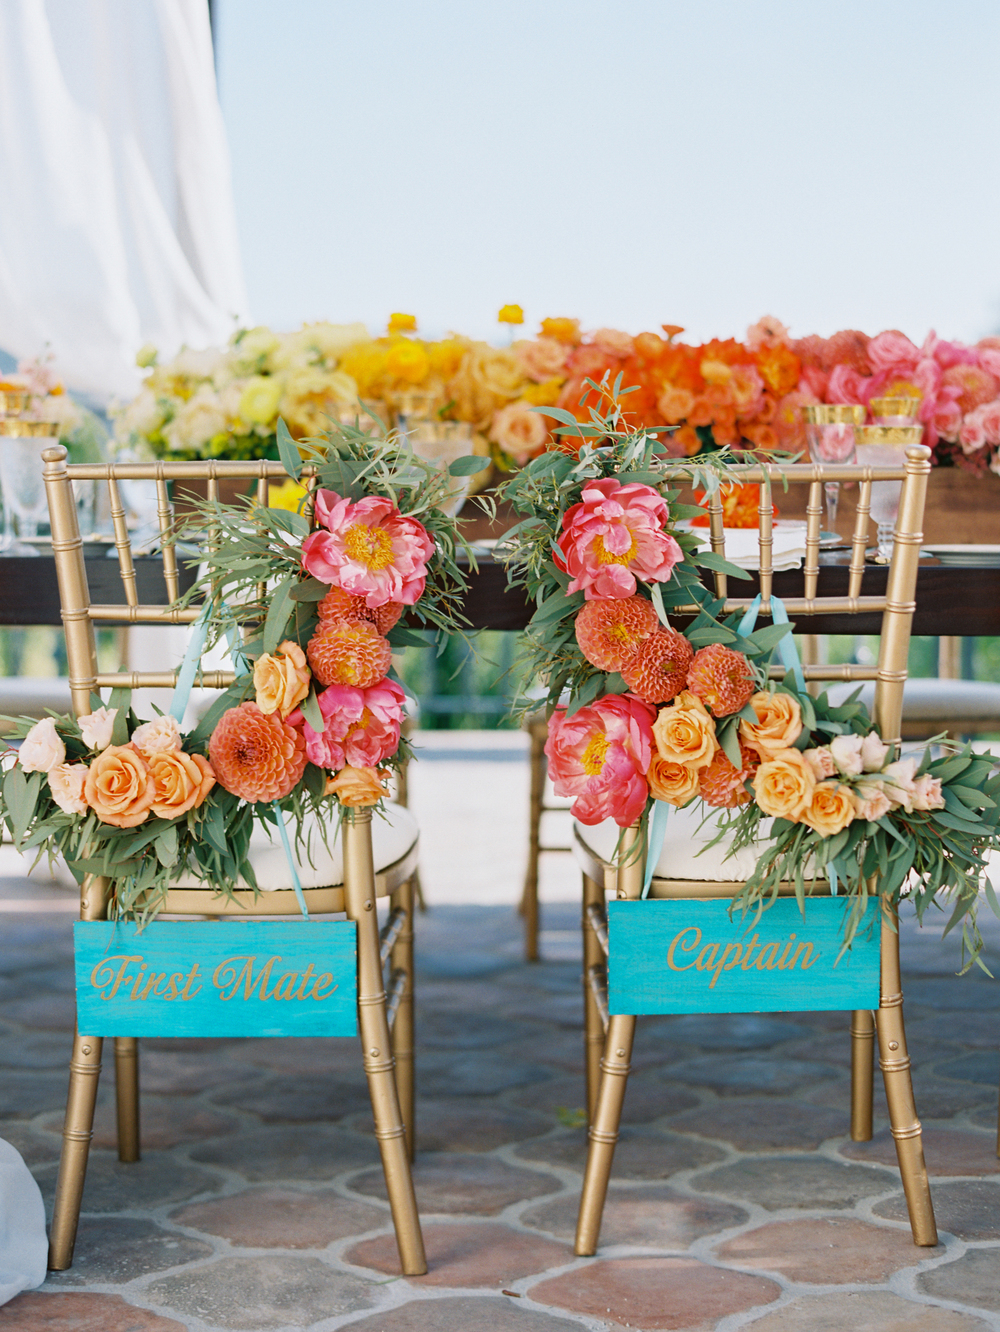 Fanciful and Glamorous Ojai Wedding - Hoste EventsFanciful and Glamorous Ojai Wedding - Hoste Events